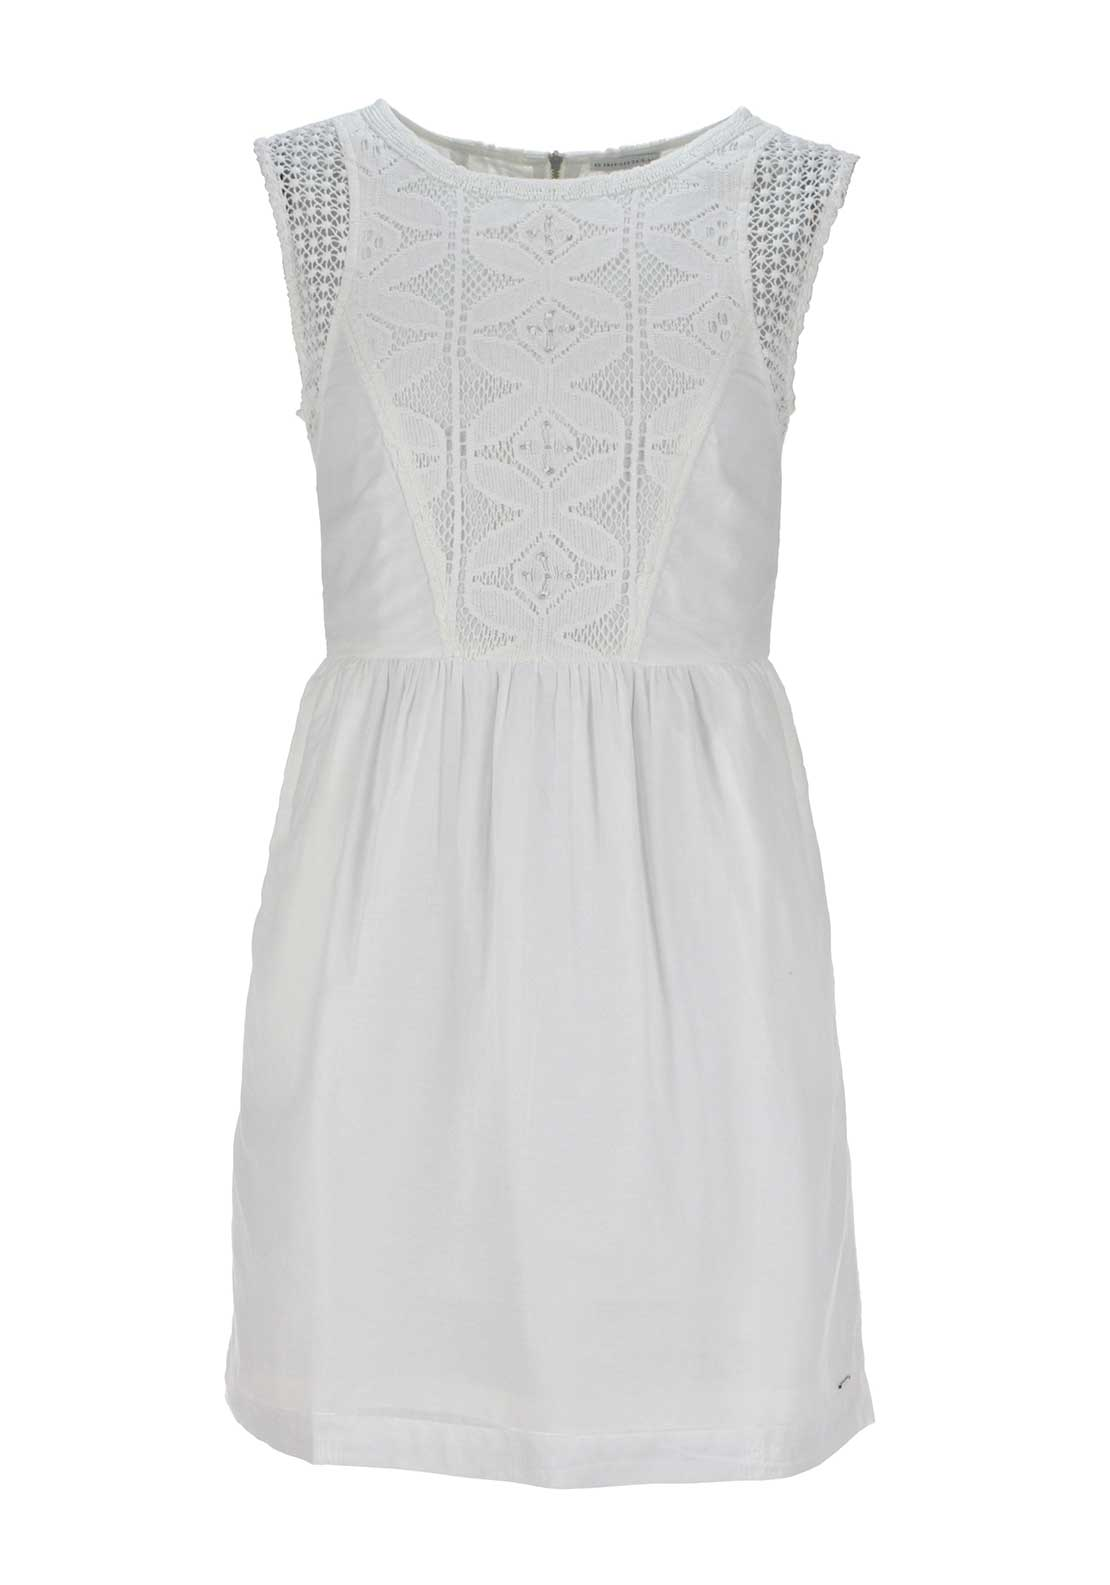 Tommy Hilfiger Womens Sleeveless Lace Panel Dress, White